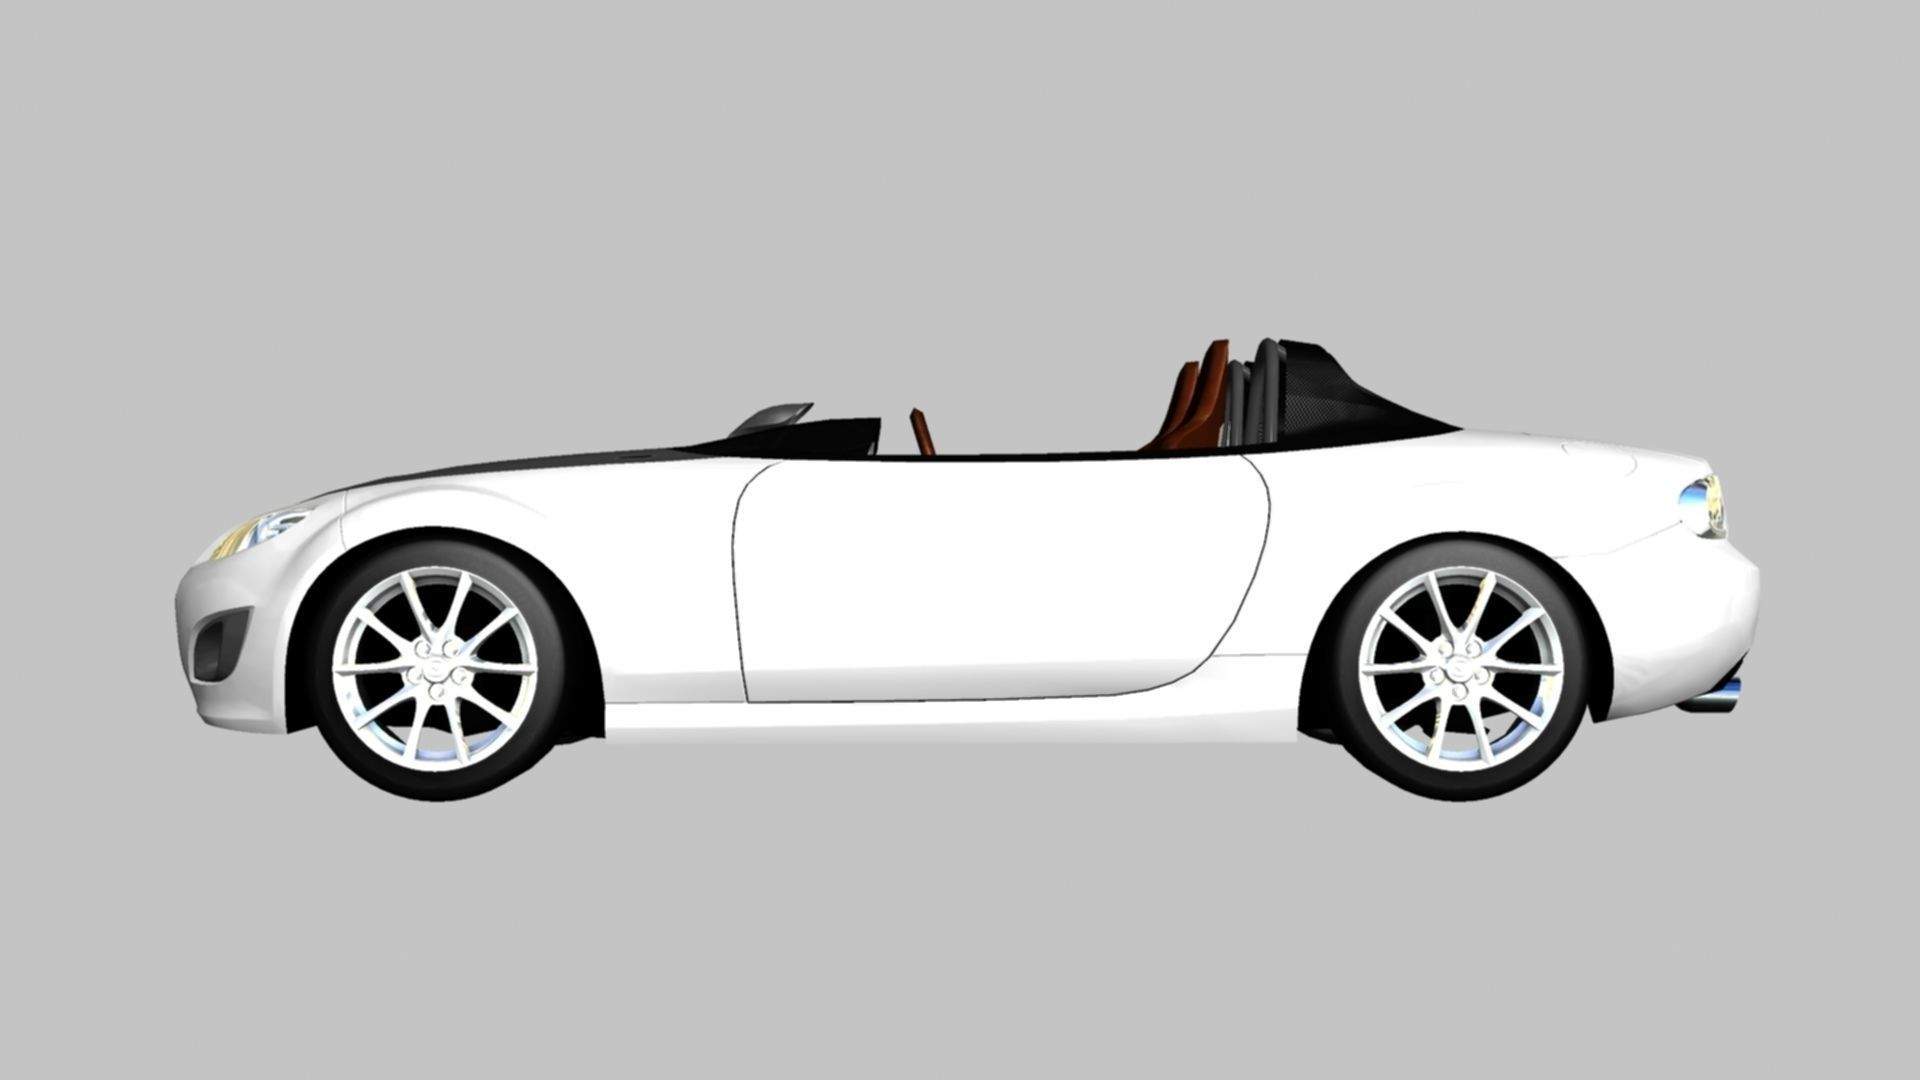 https://img-new.cgtrader.com/items/783974/0c1e6c3a27/mazda-mx-5-superlight-2010-3d-model-low-poly-max-obj-3ds-fbx.jpg